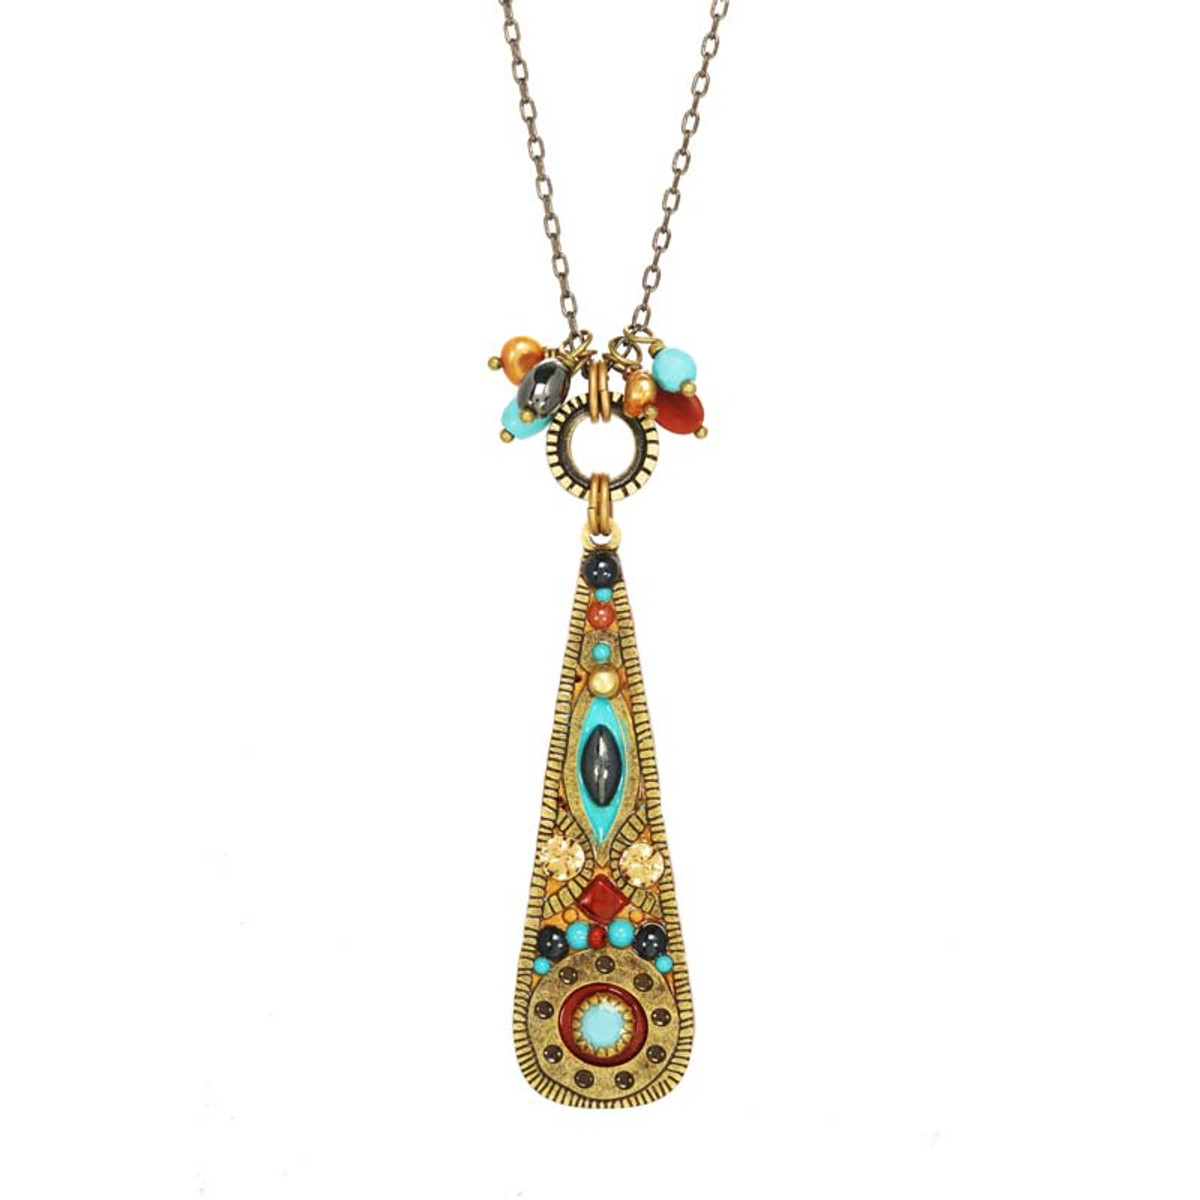 Gold Southwest necklace by Michal Golan Jewelry